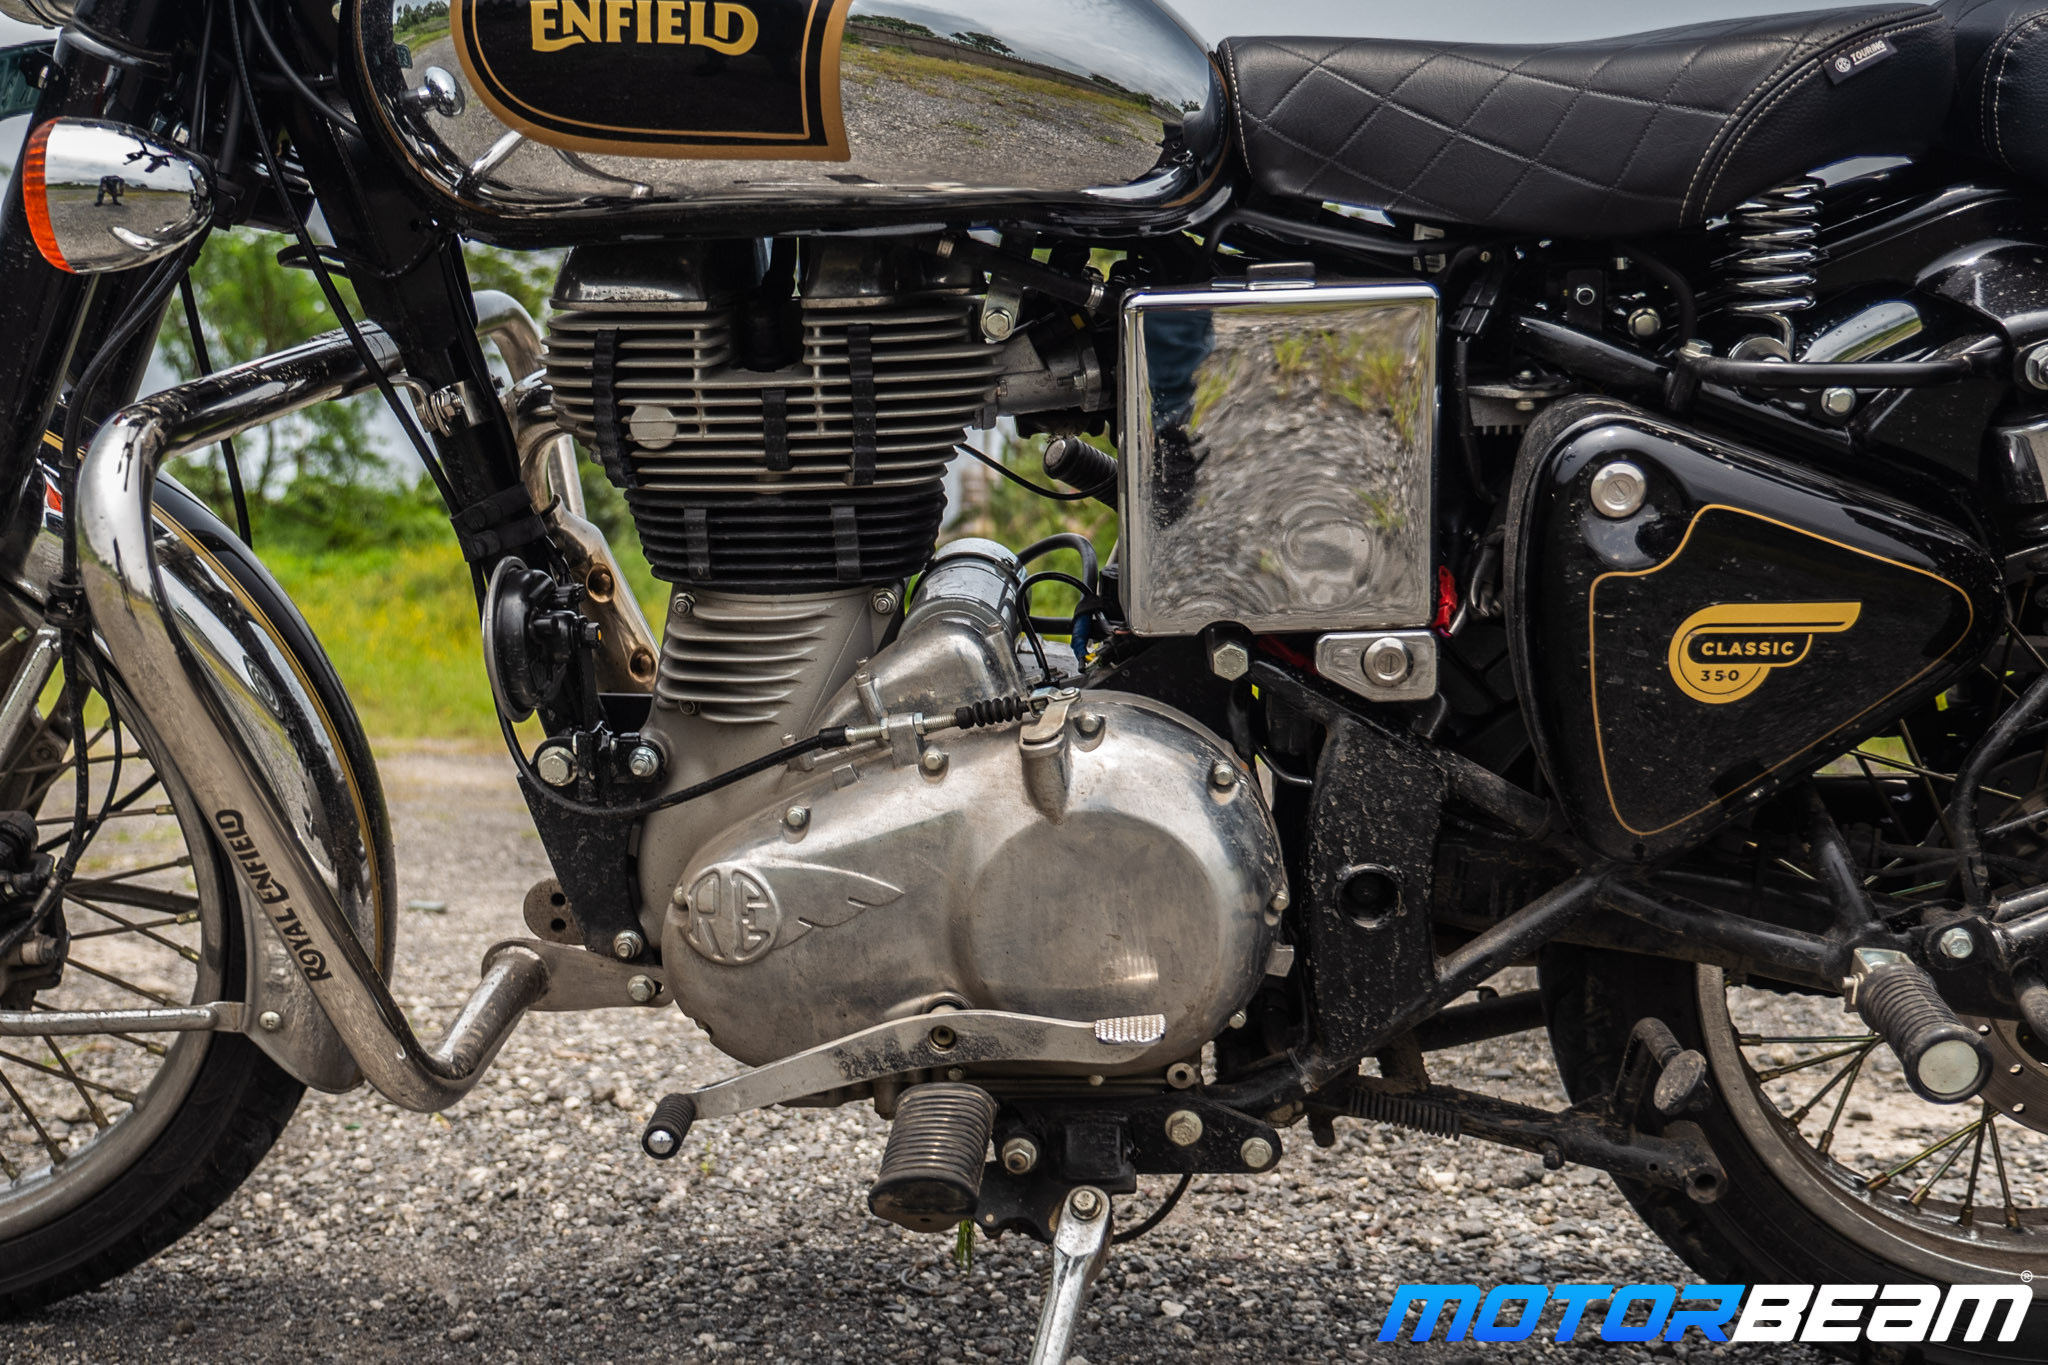 2020 Royal Enfield Classic 350 Review 29